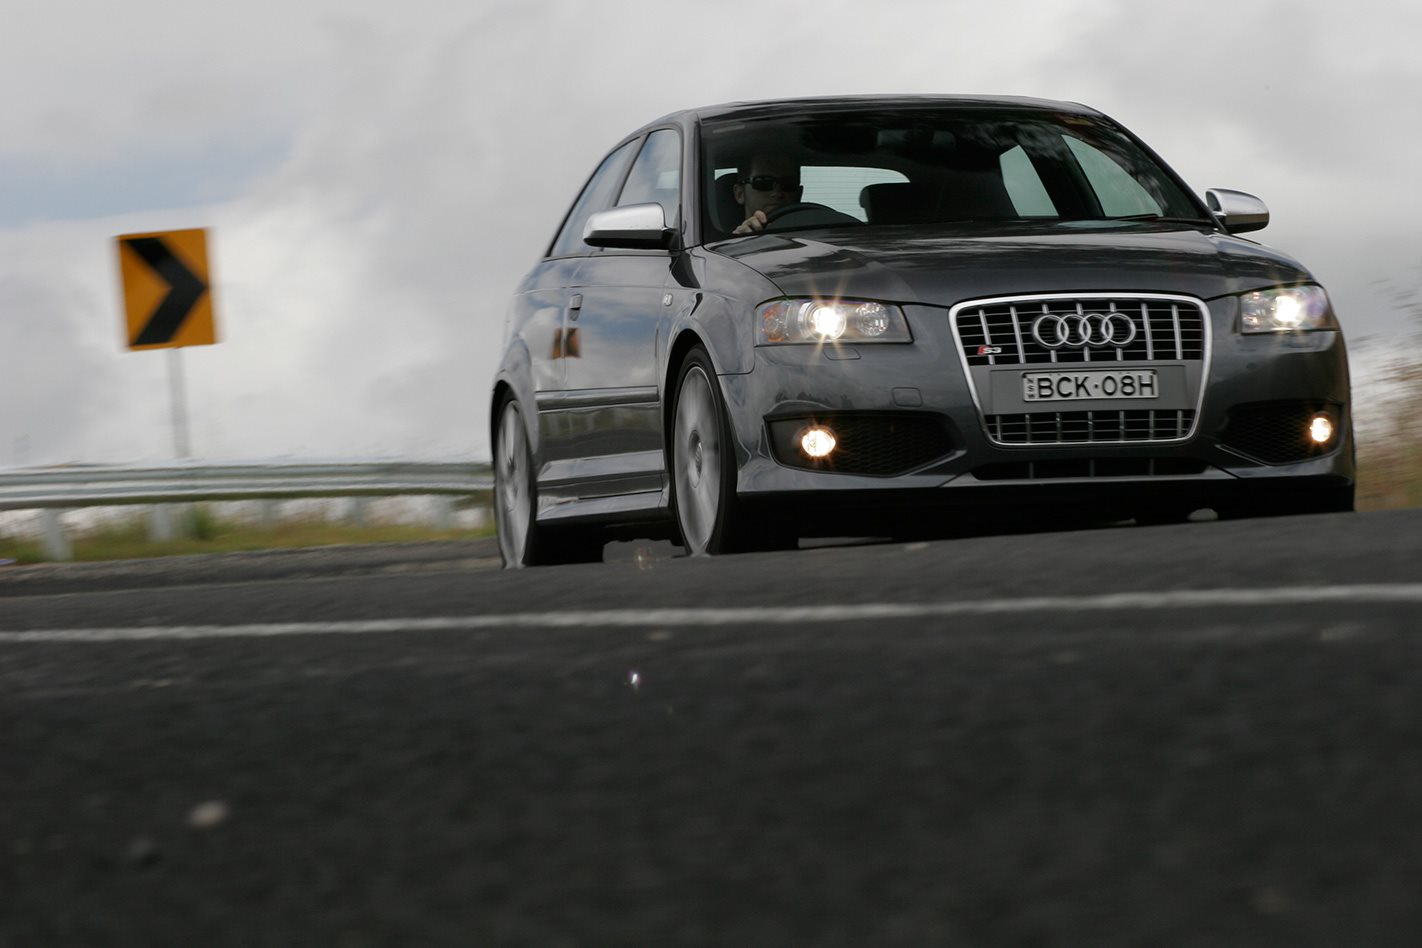 2008 Audi S3 front drive.jpg